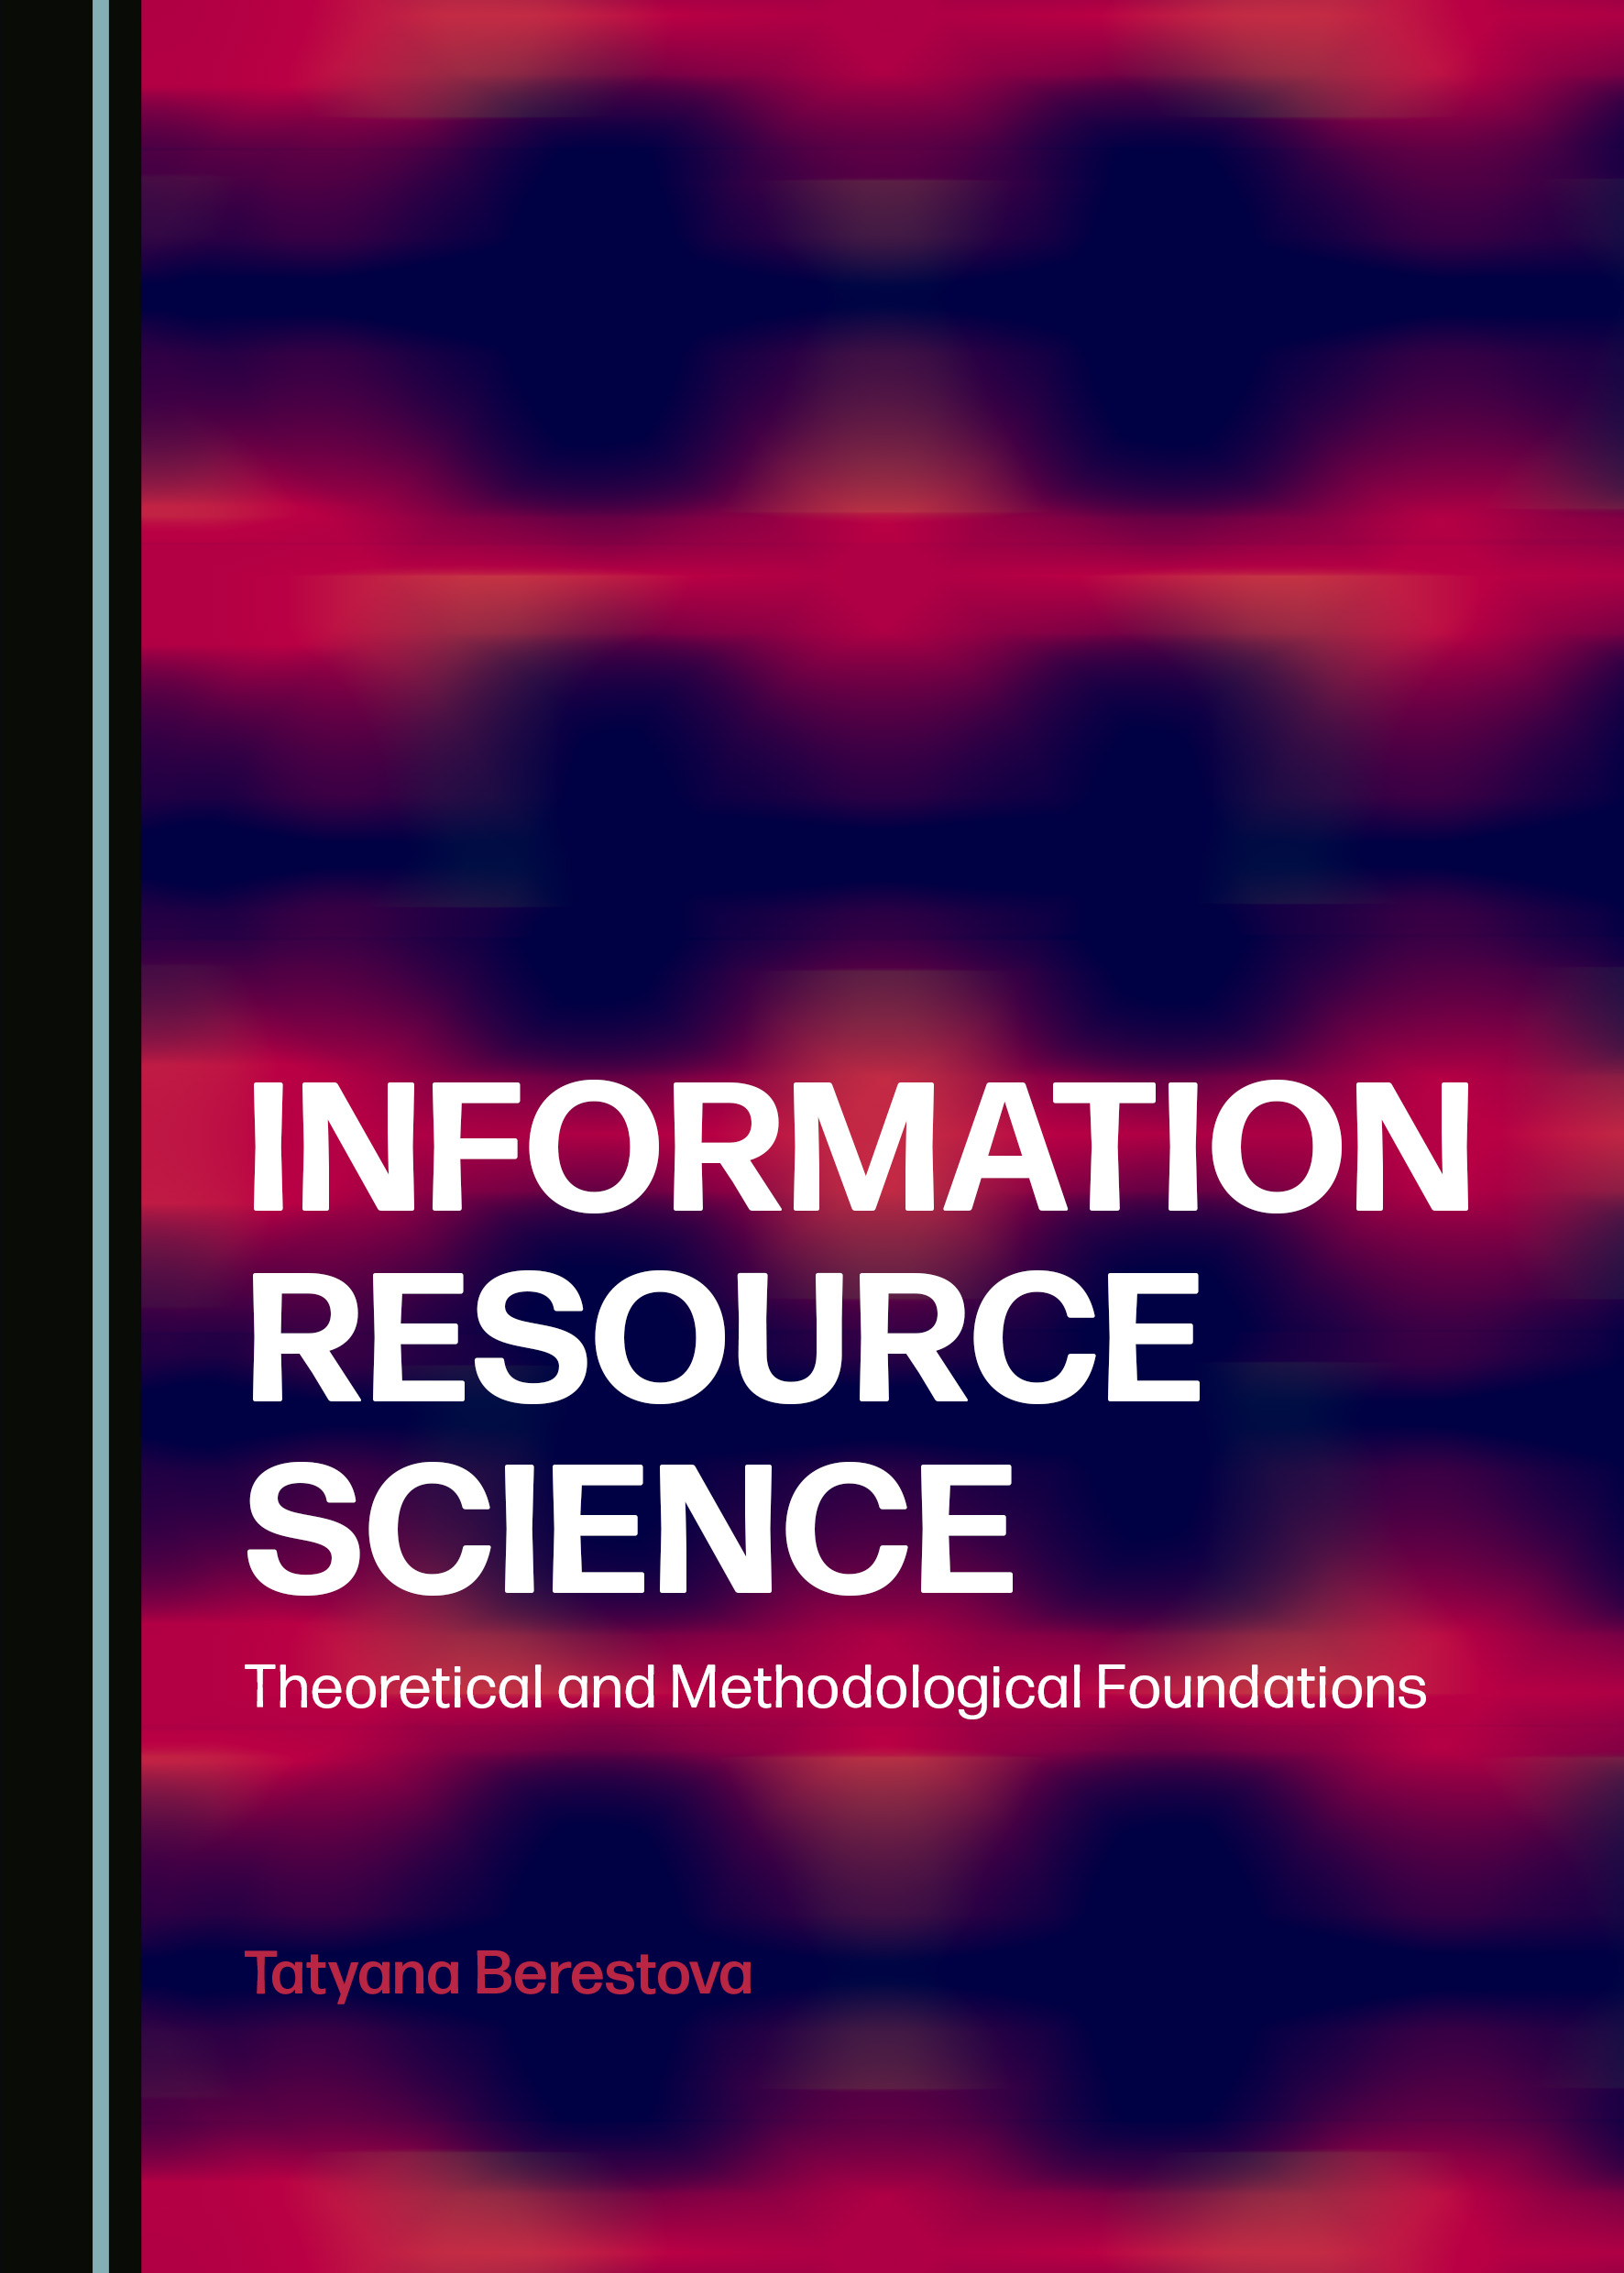 Information Resource Science: Theoretical and Methodological Foundations